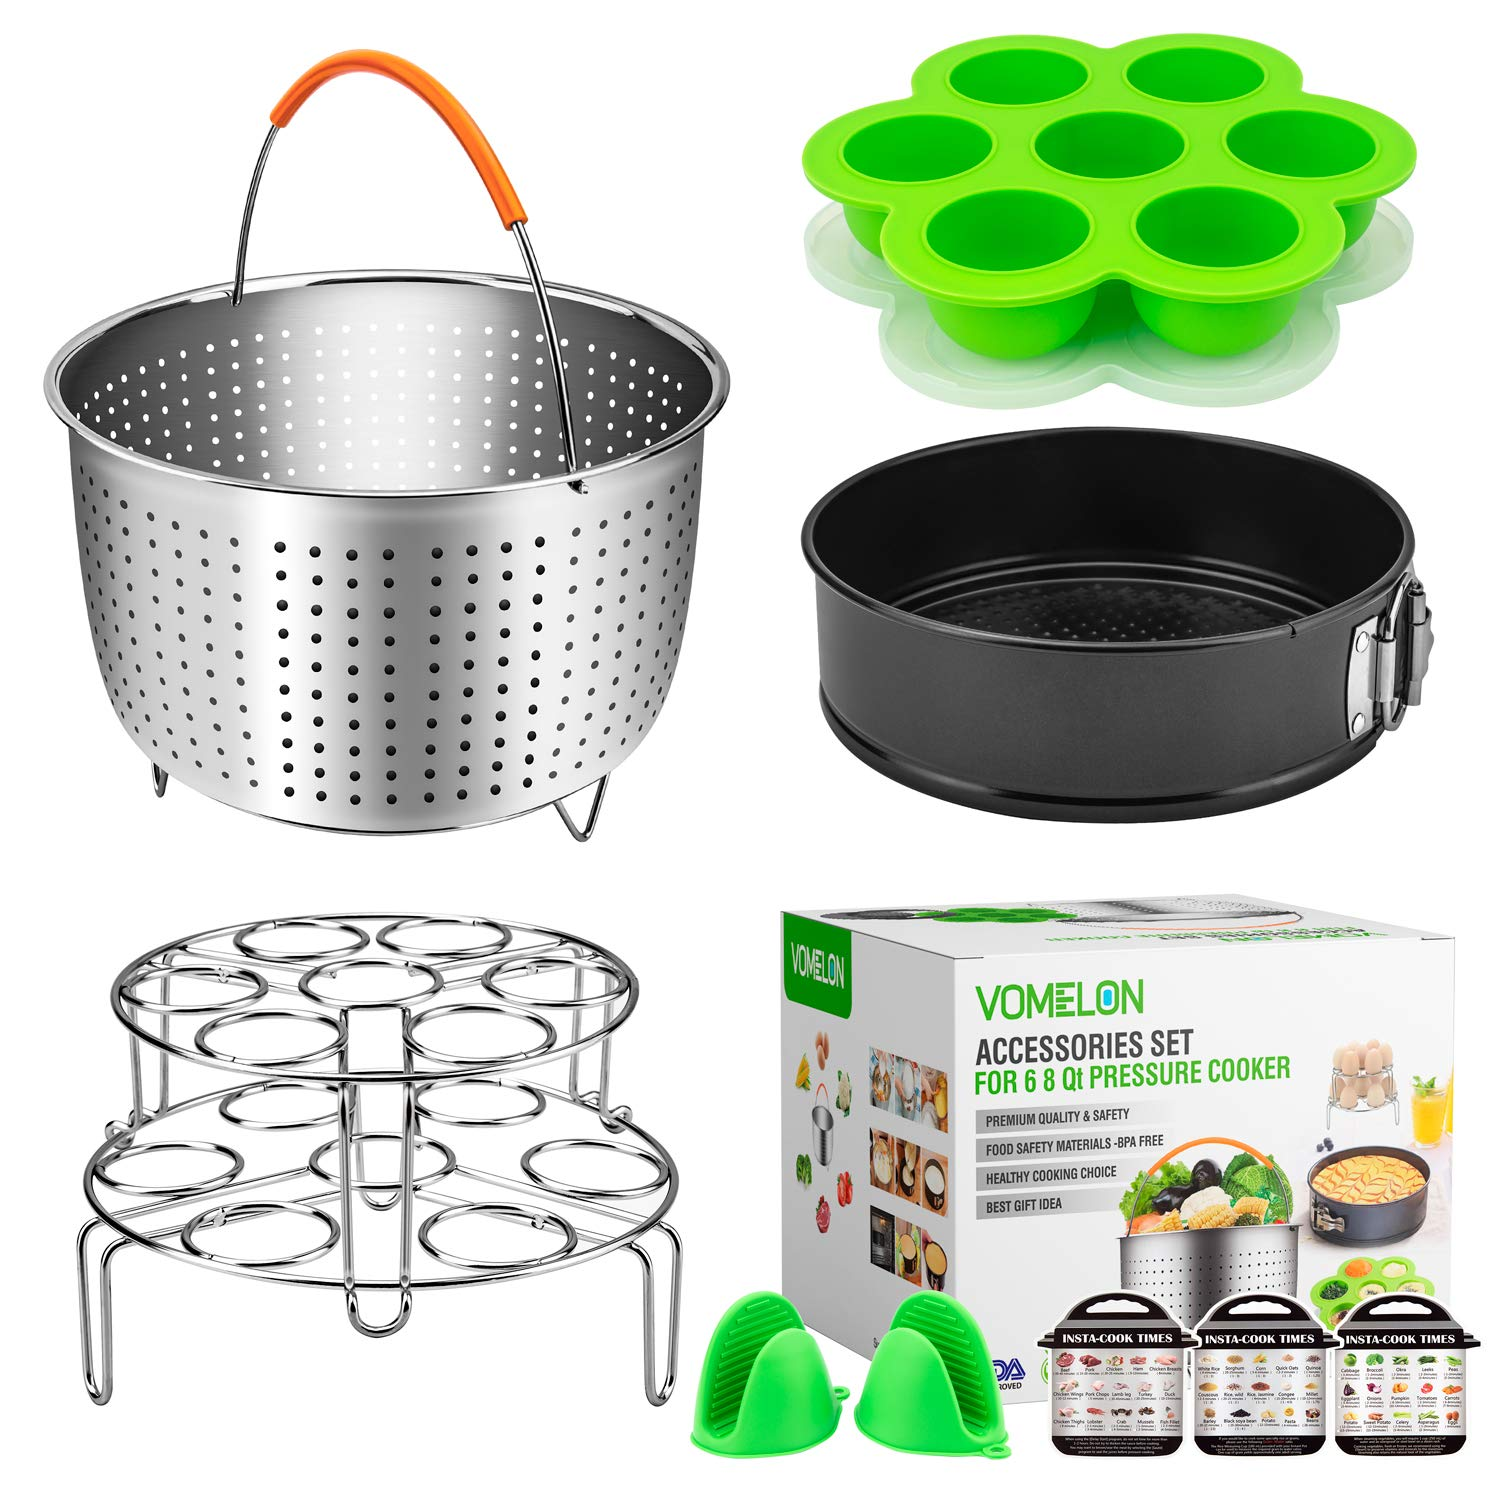 Cooking Accessories for Instant Pot 6,8 Qt, 10-Piece Instant Pot Steamer Basket,Silicone Egg Bites Mold,7'' Springfrom Pan,Egg Steamer Racks,Magnetic Cheat Sheets And Oven Mitts Bonus Recipes Ebook